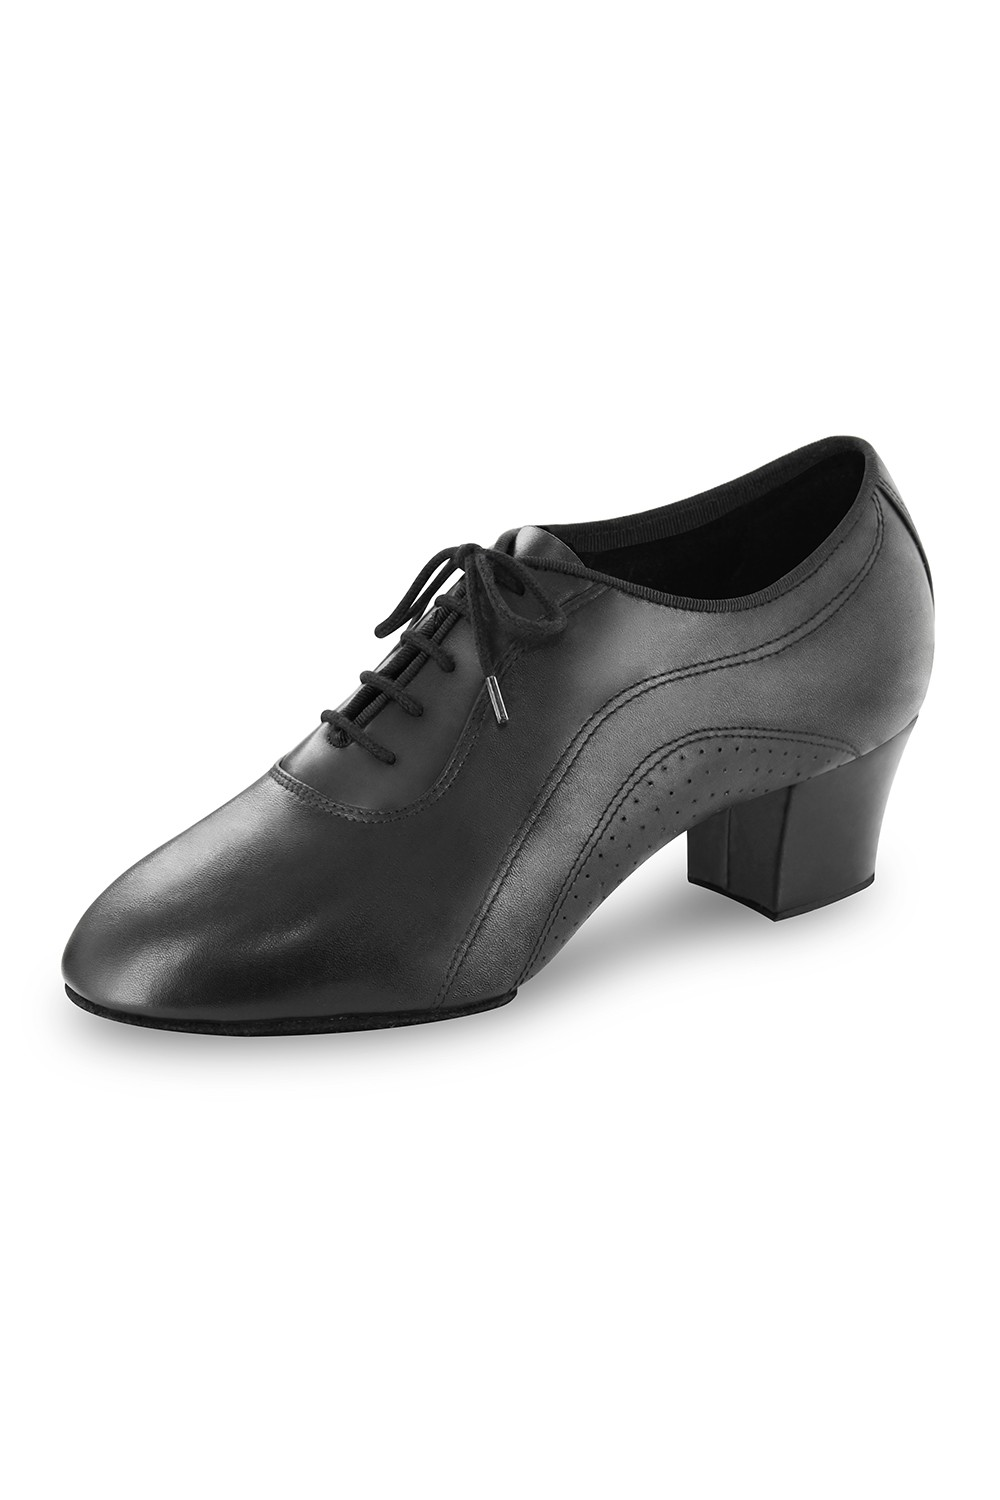 Jose Men's Ballroom & Latin Shoes